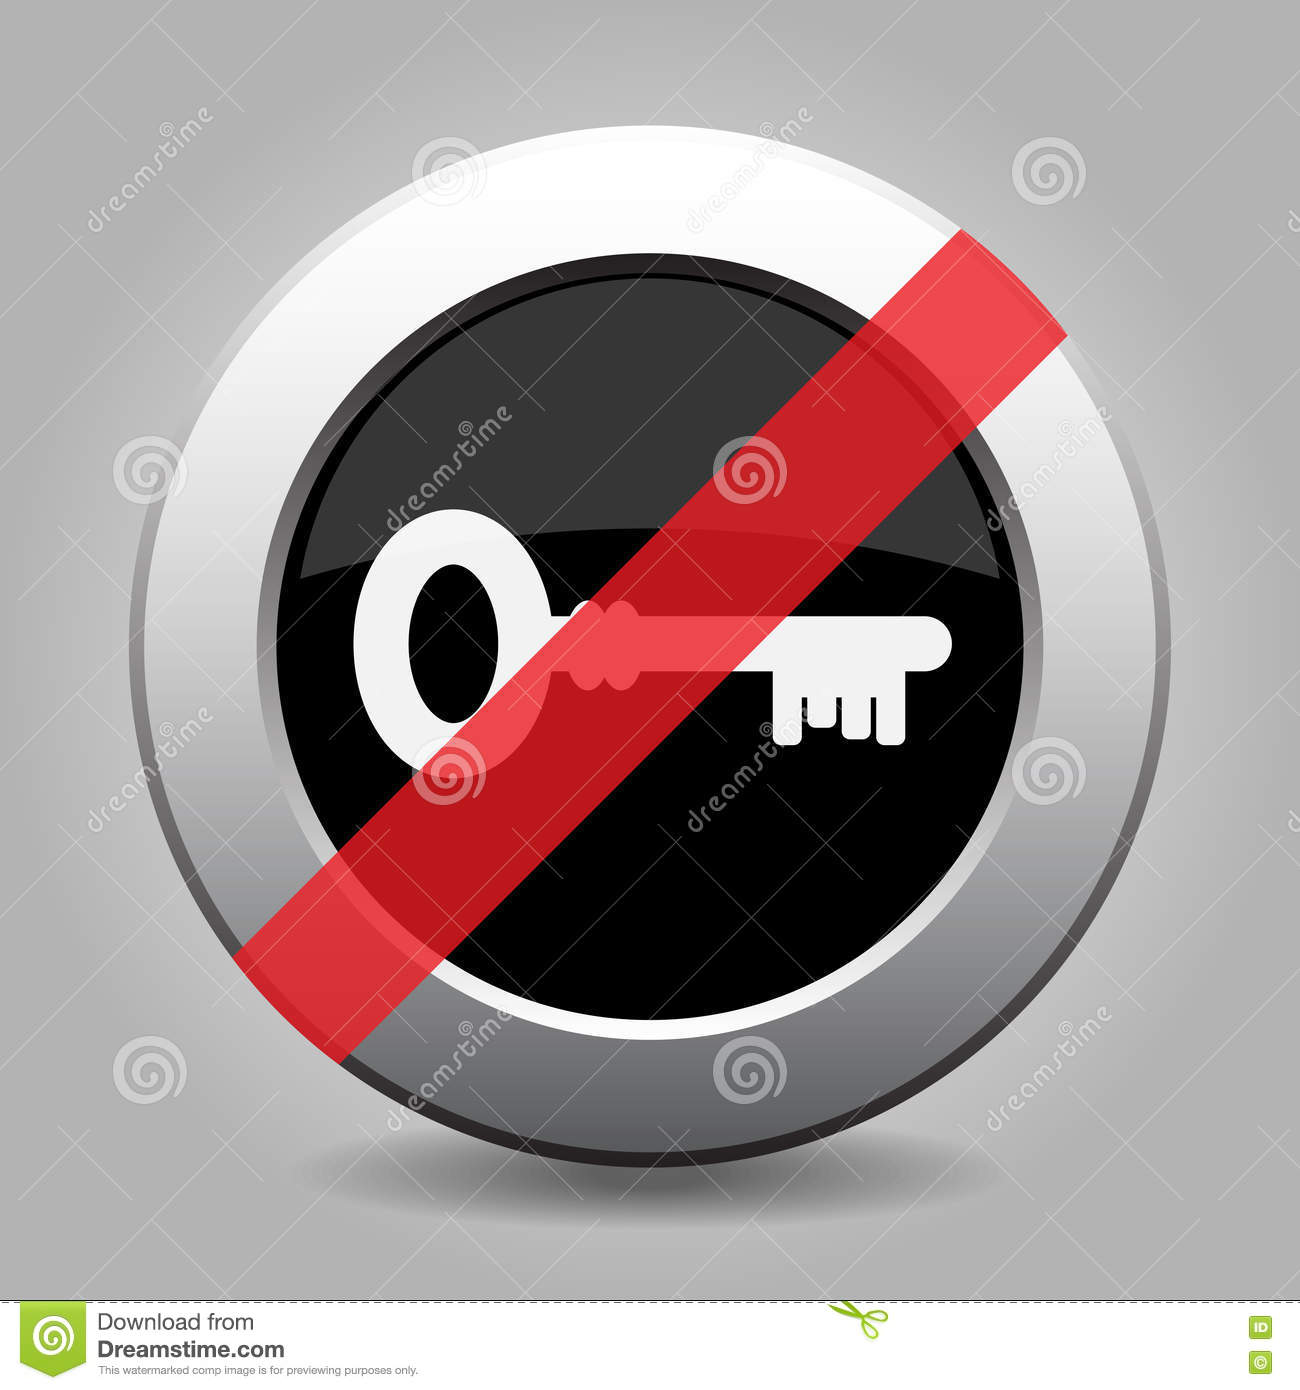 Gray Chrome Button - No Key Stock Vector - Illustration of button